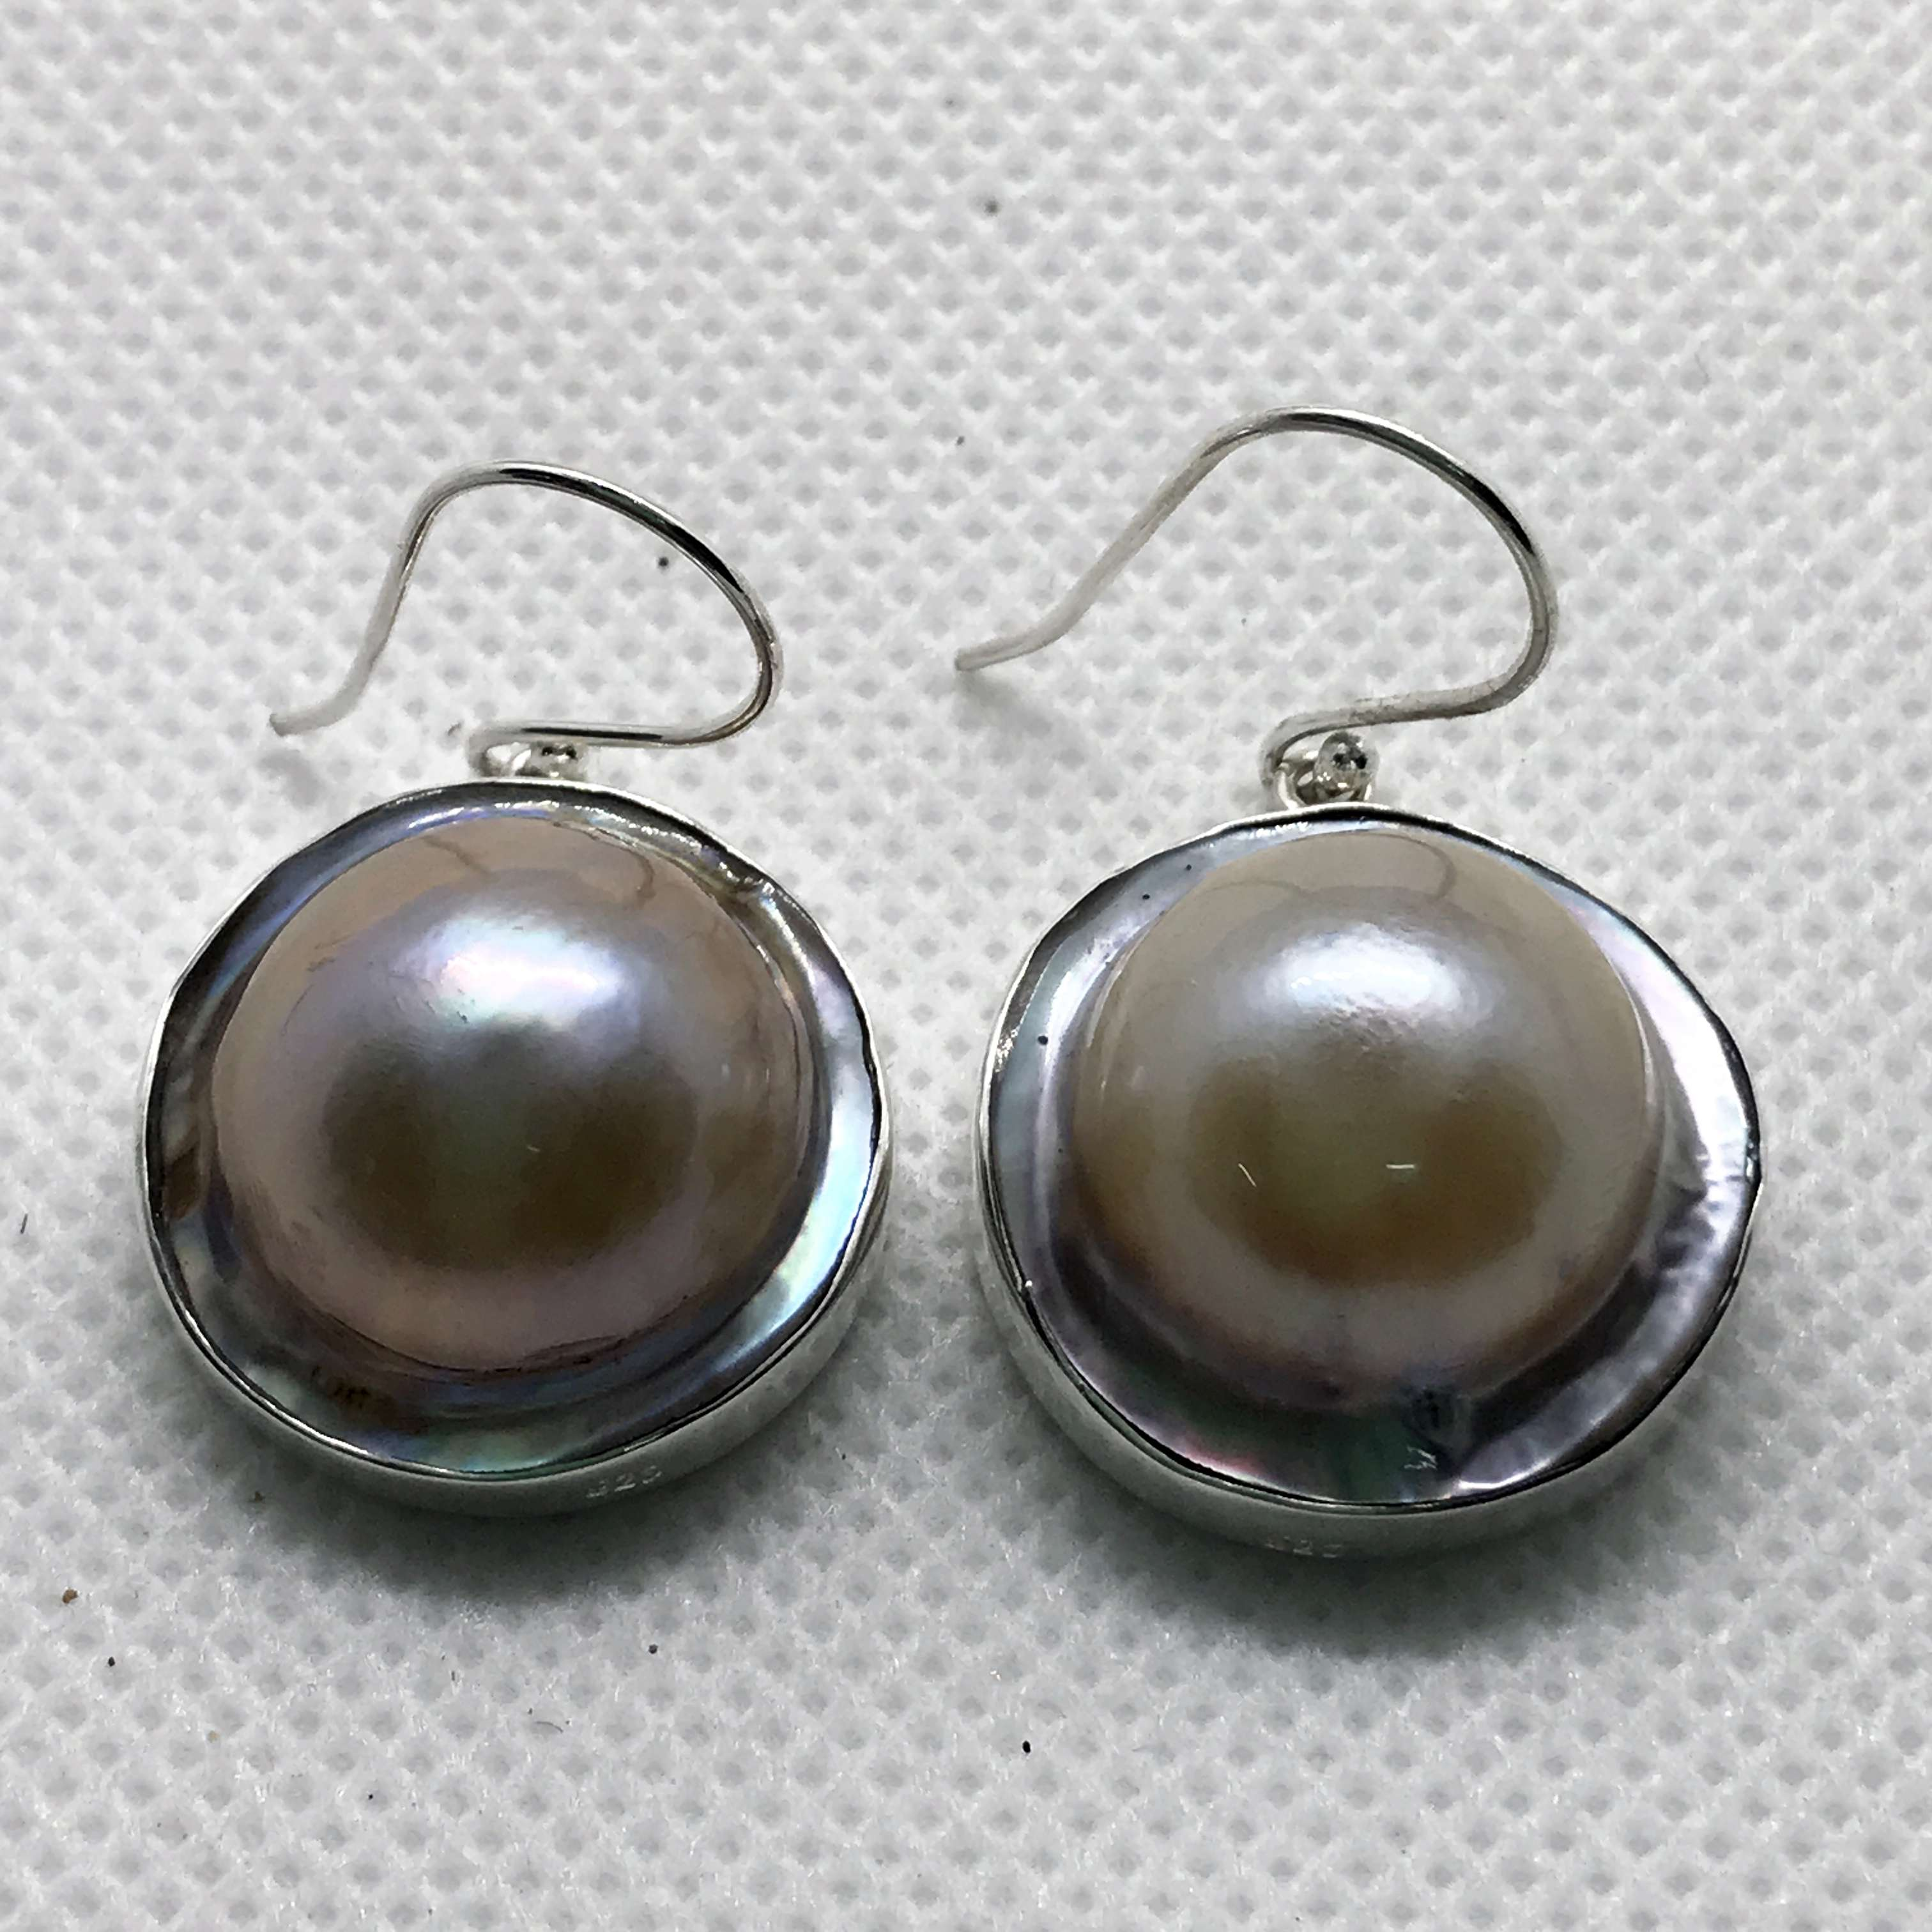 BALI 925 STERLING SILVER EARRINGS WITH SHELL